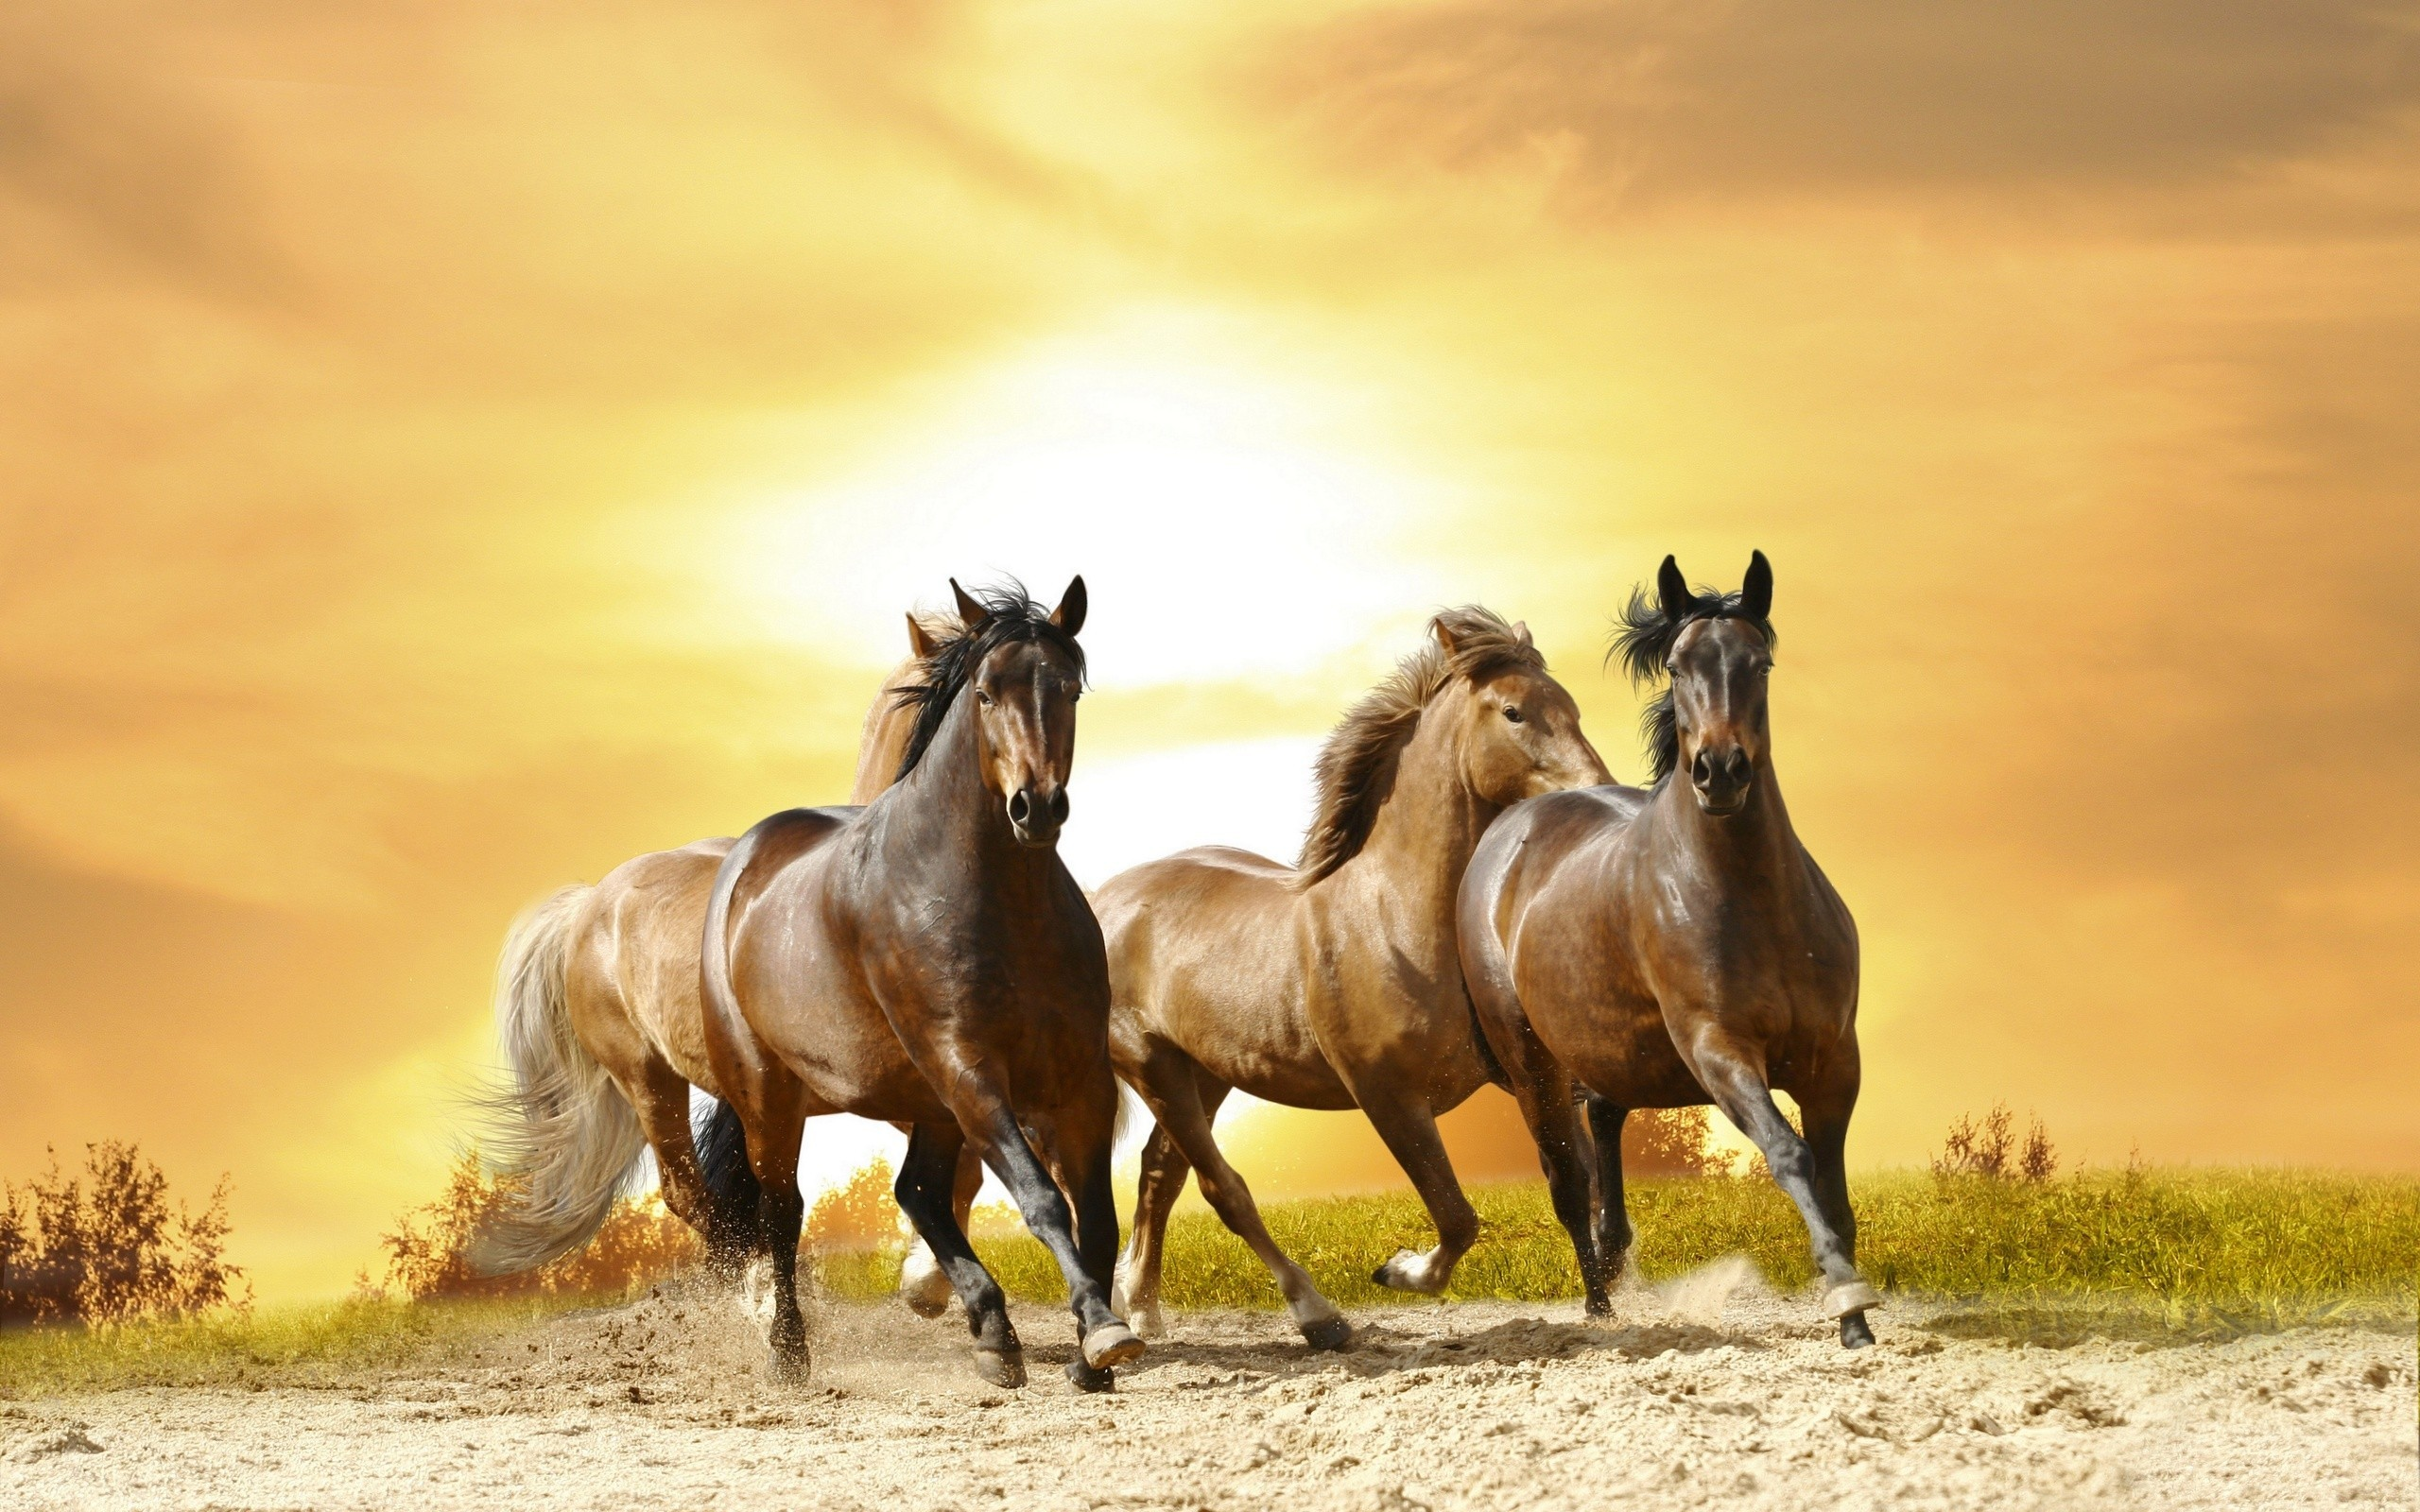 2560x1600 Horses: Horse Animals Stallion Wild Cool Wallpapers for HD 16:9 .